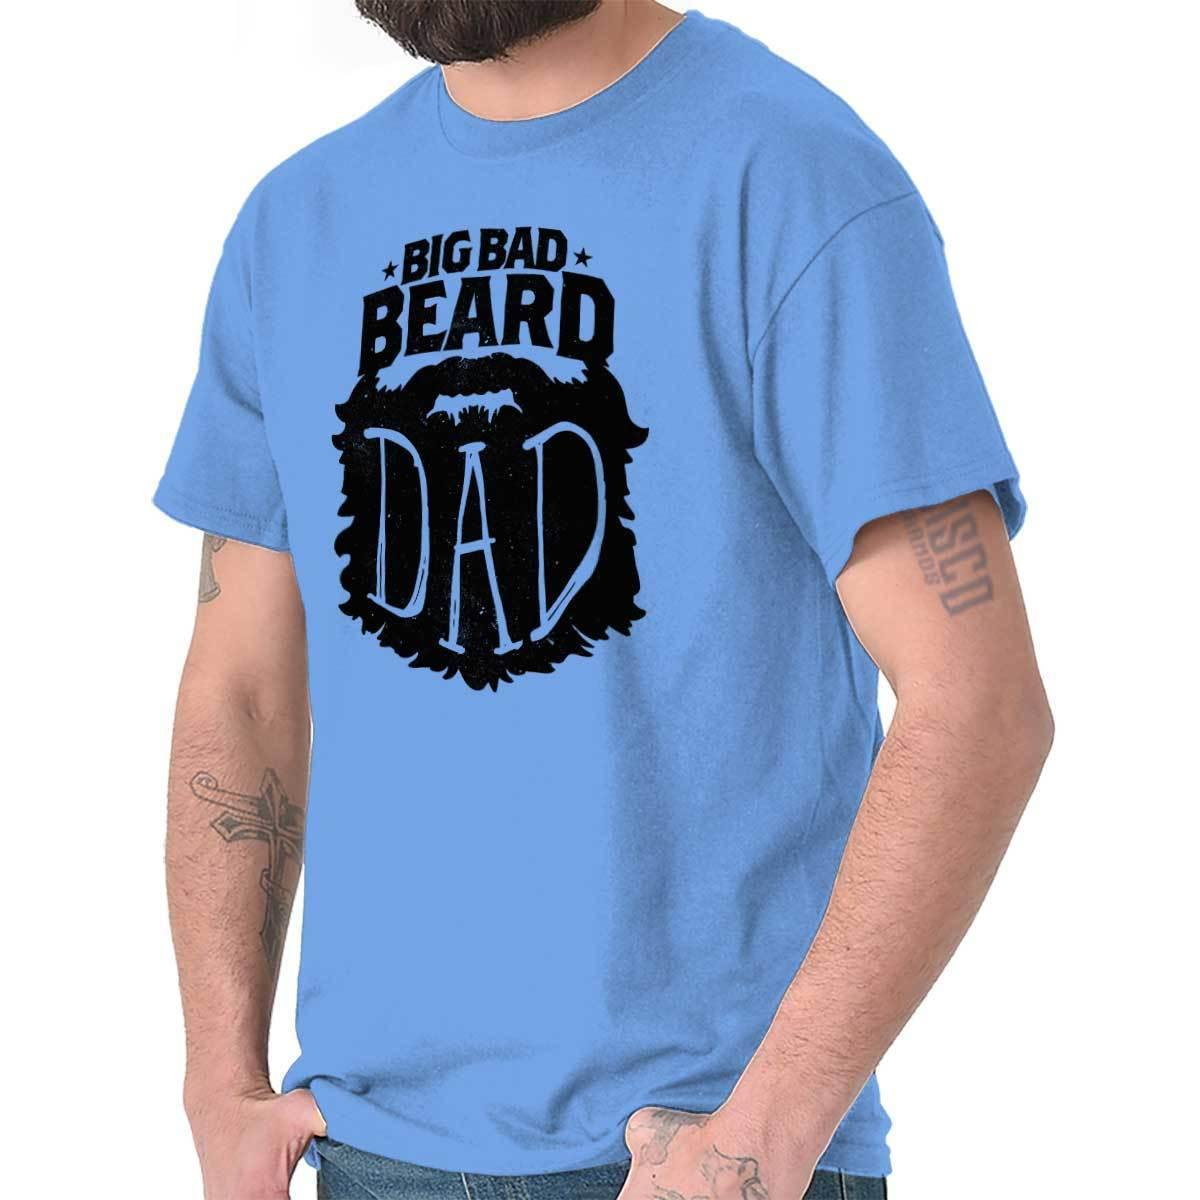 6e3fb586 Details Zu Big Bad Beard Dad Daddy Papa Father Mustache Bearded Hair T  Shirt Tee Funny Unisex Casual Tee Gift Awesome Cheap T Shirts Online  Shopping For T ...